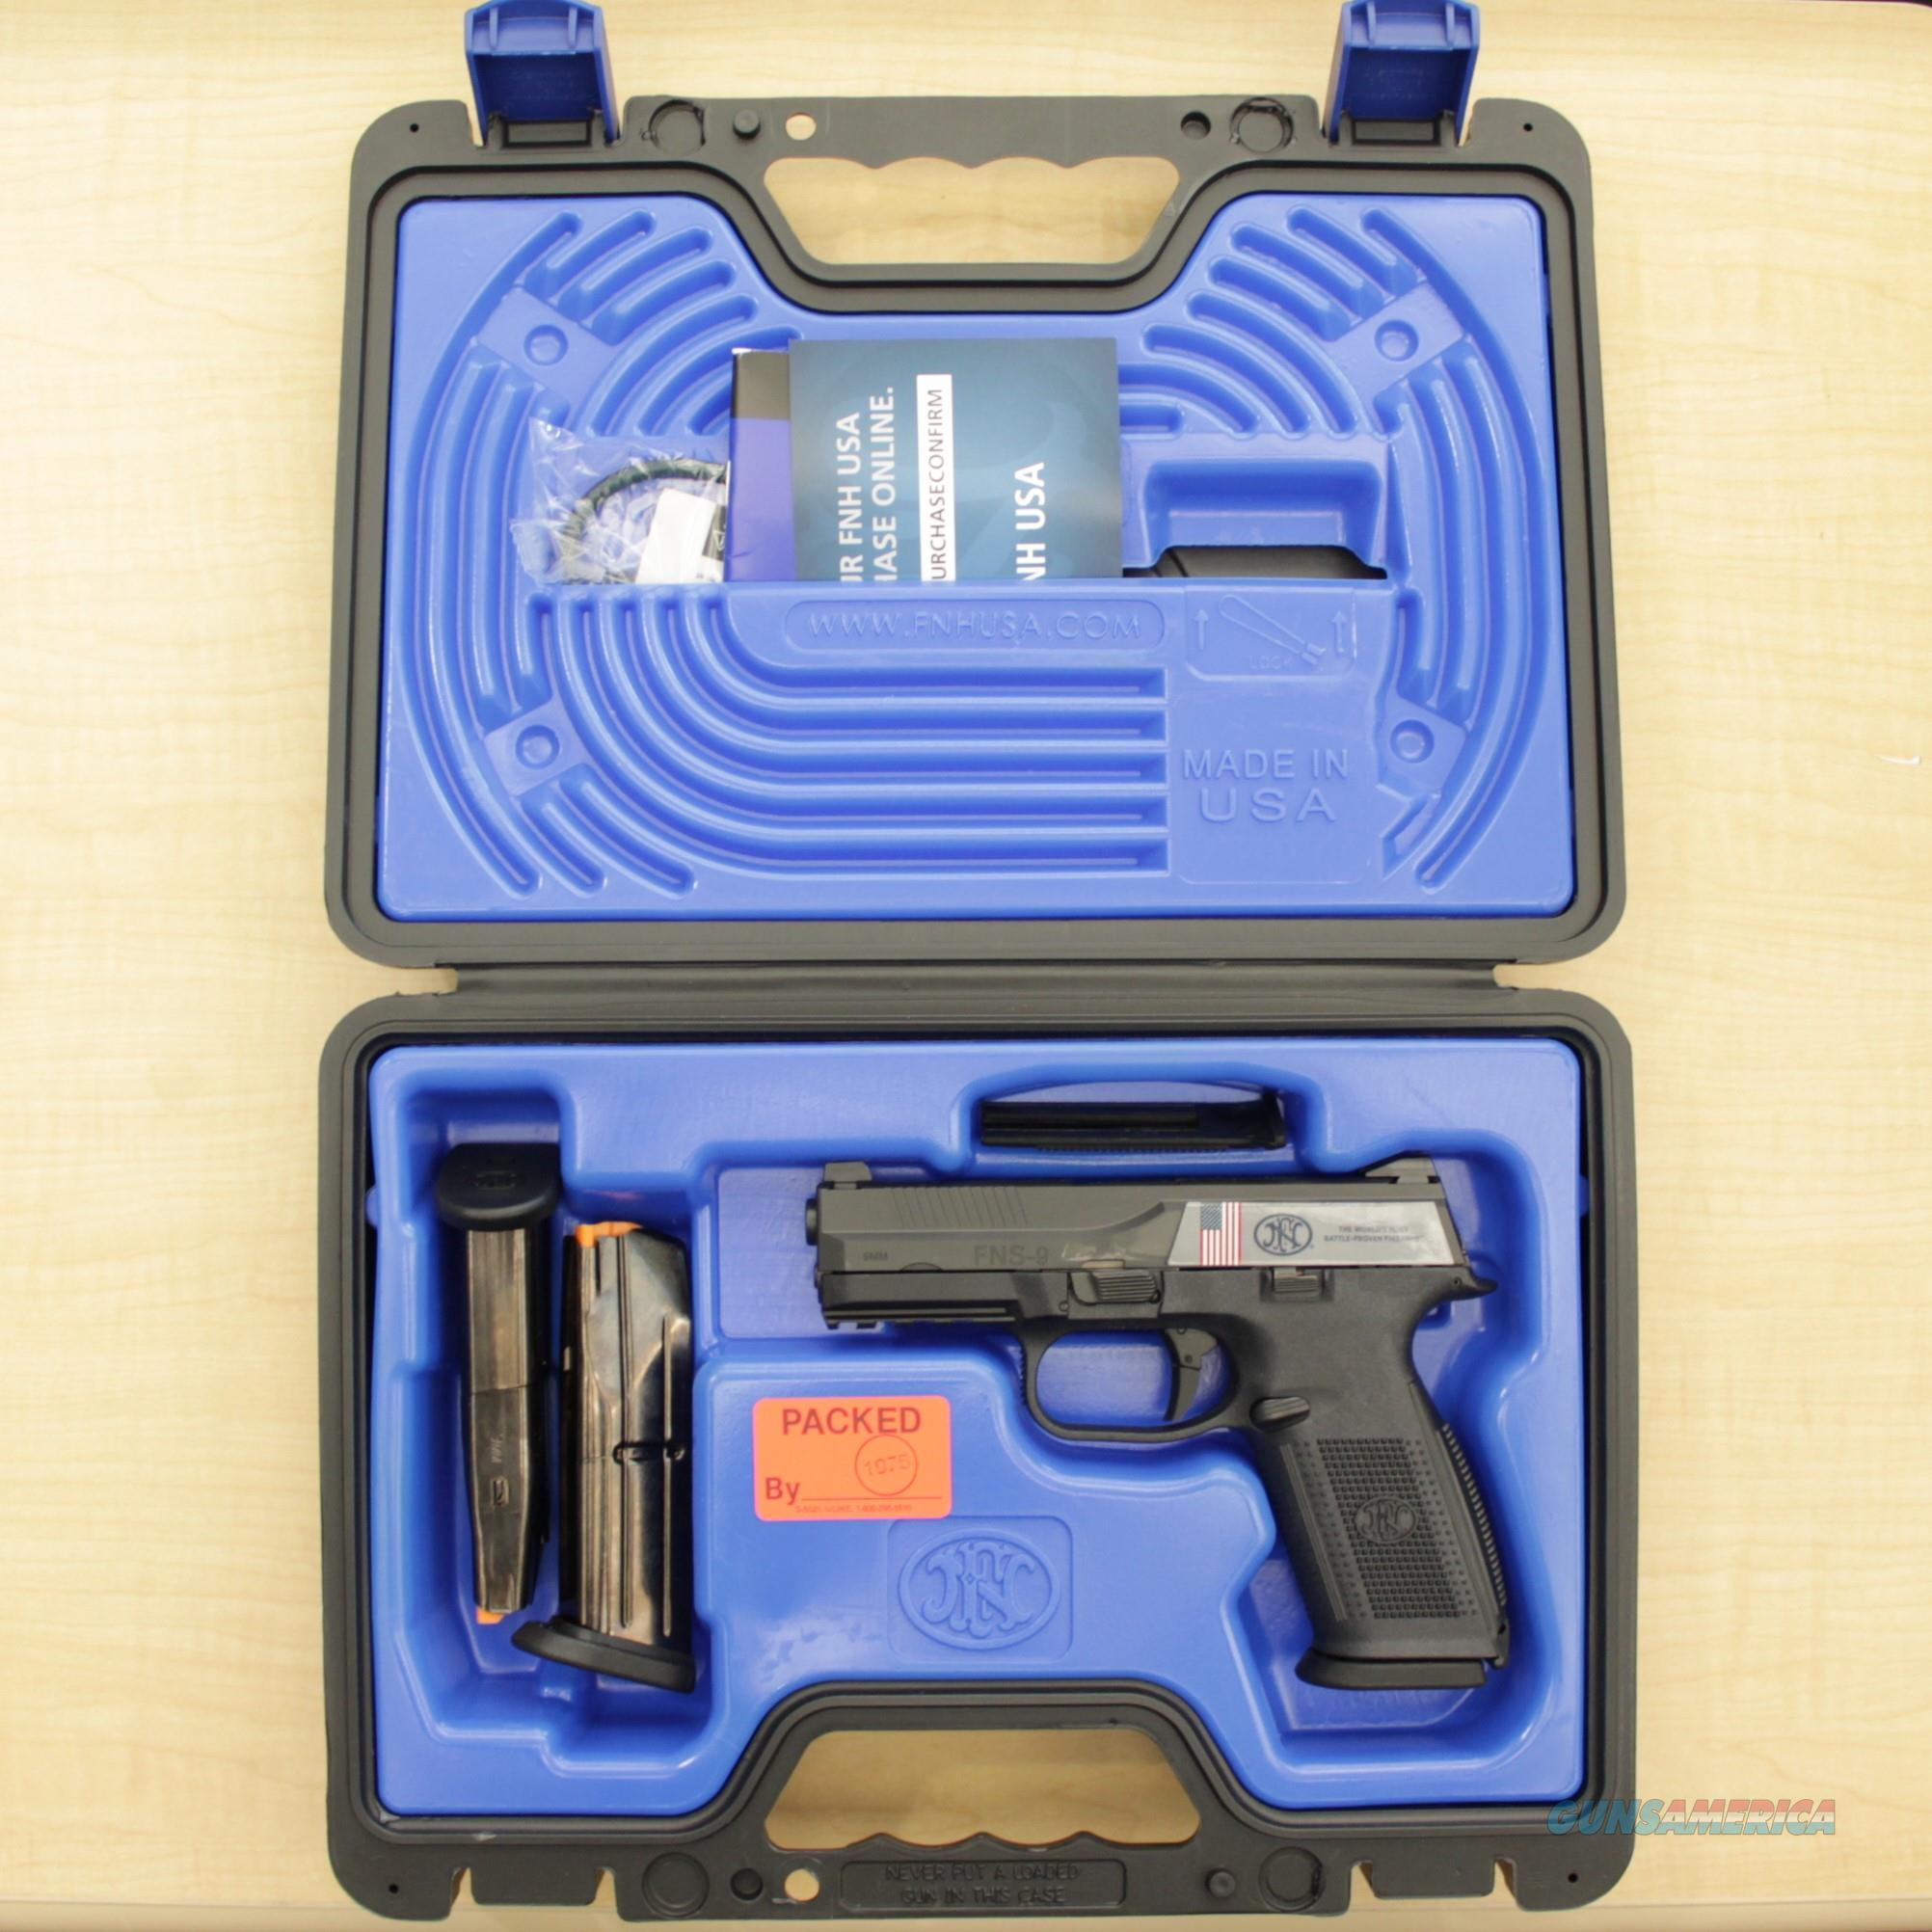 New! - FNH USA FNS-9 9mm No Manual Safety - Includes 3 Mags!  Guns > Pistols > FNH - Fabrique Nationale (FN) Pistols > FNS